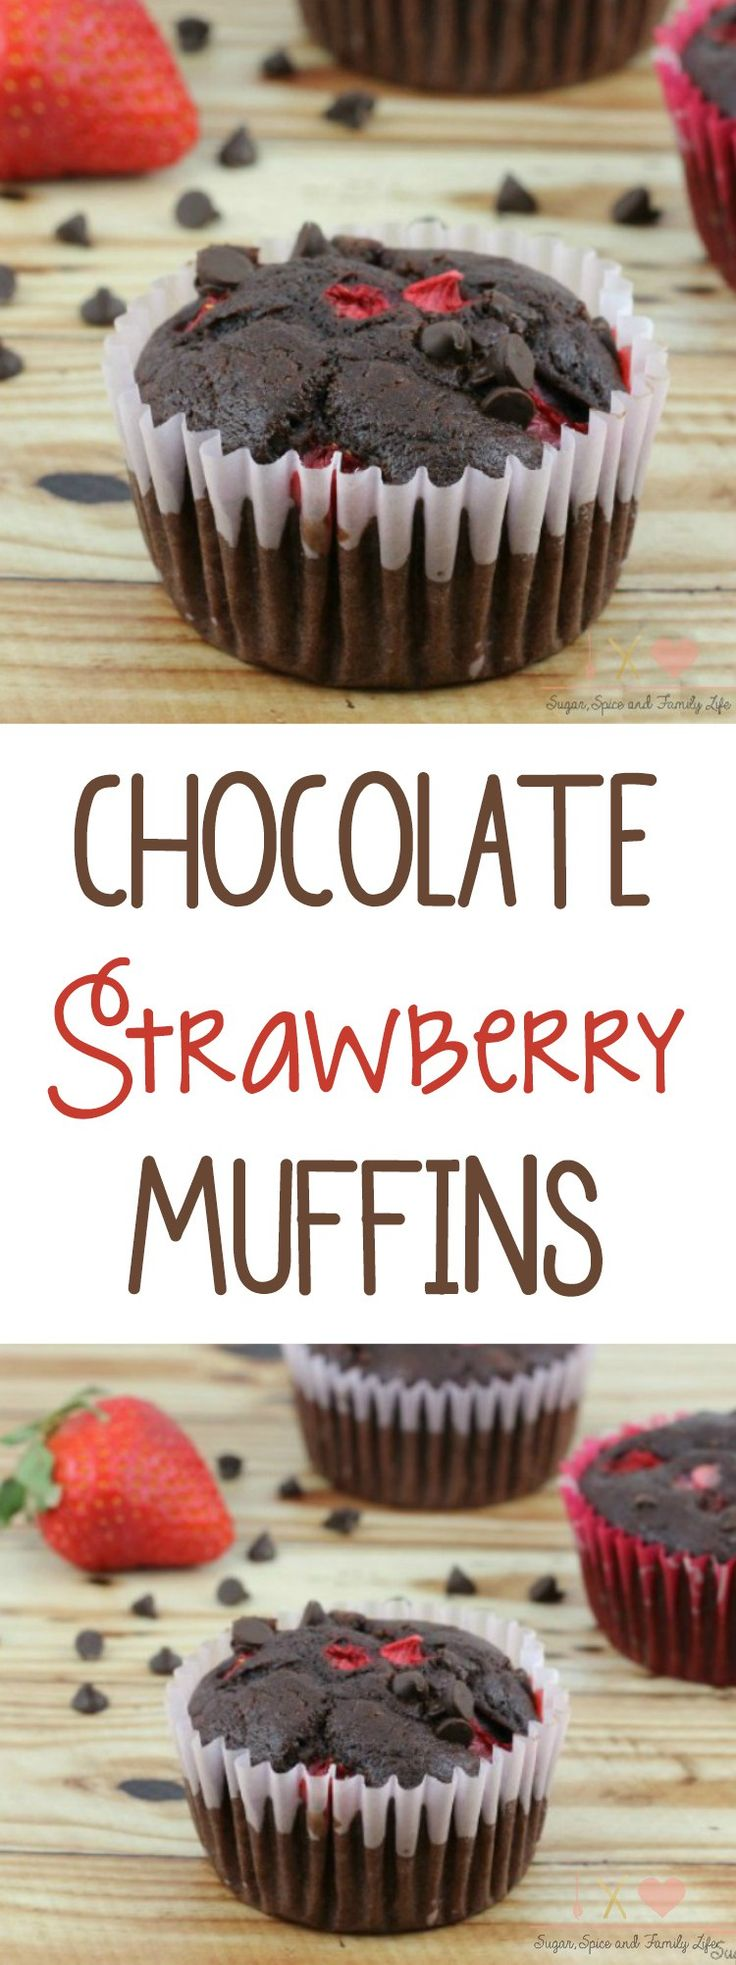 If you love chocolate covered strawberries, then you need to make Chocolate Strawberry Muffins. Each chocolate muffin is filled with chocolate chips and strawberries. These chocolate chocolate chip muffins are great for breakfast or snack. - Chocolate Strawberry Muffins Recipe on Sugar, Spice and Family Life #chocolatestrawberry #muffins #chocolate #chocolatechip #chocolatemuffins #chocolatechipmuffins #chocolatechocolatechip #chocolatechocolatechipmuffins #strawberry #strawberrymuffins…